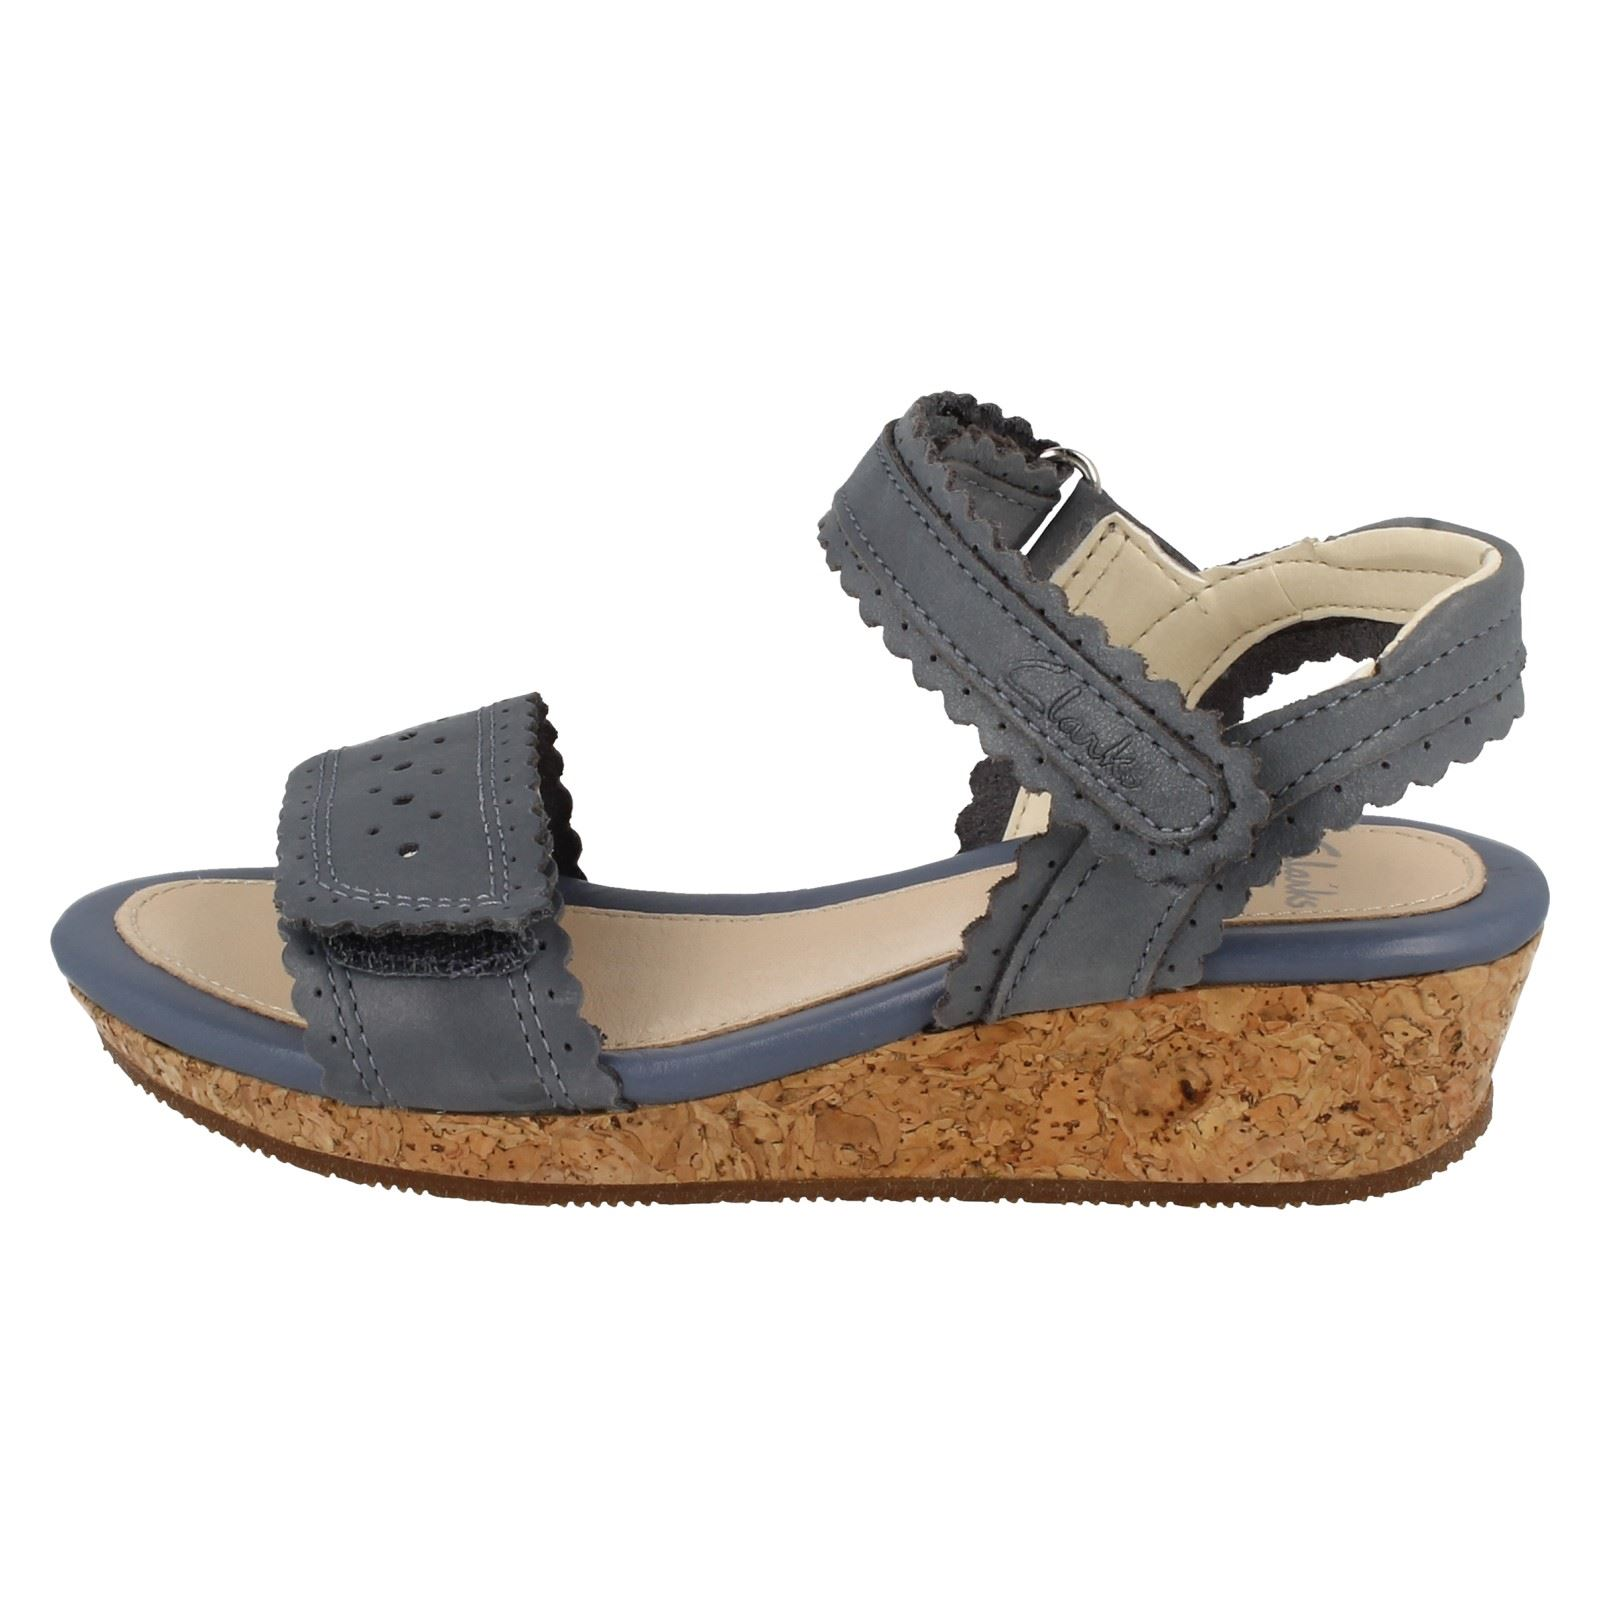 583355dfb7c ... Girls Clarks Wedge Heel Summer Sandals Harpy Myth Denim Blue (blue) UK  10.5 Infant F. About this product. Picture 1 of 10  Picture 2 of 10   Picture 3 of ...